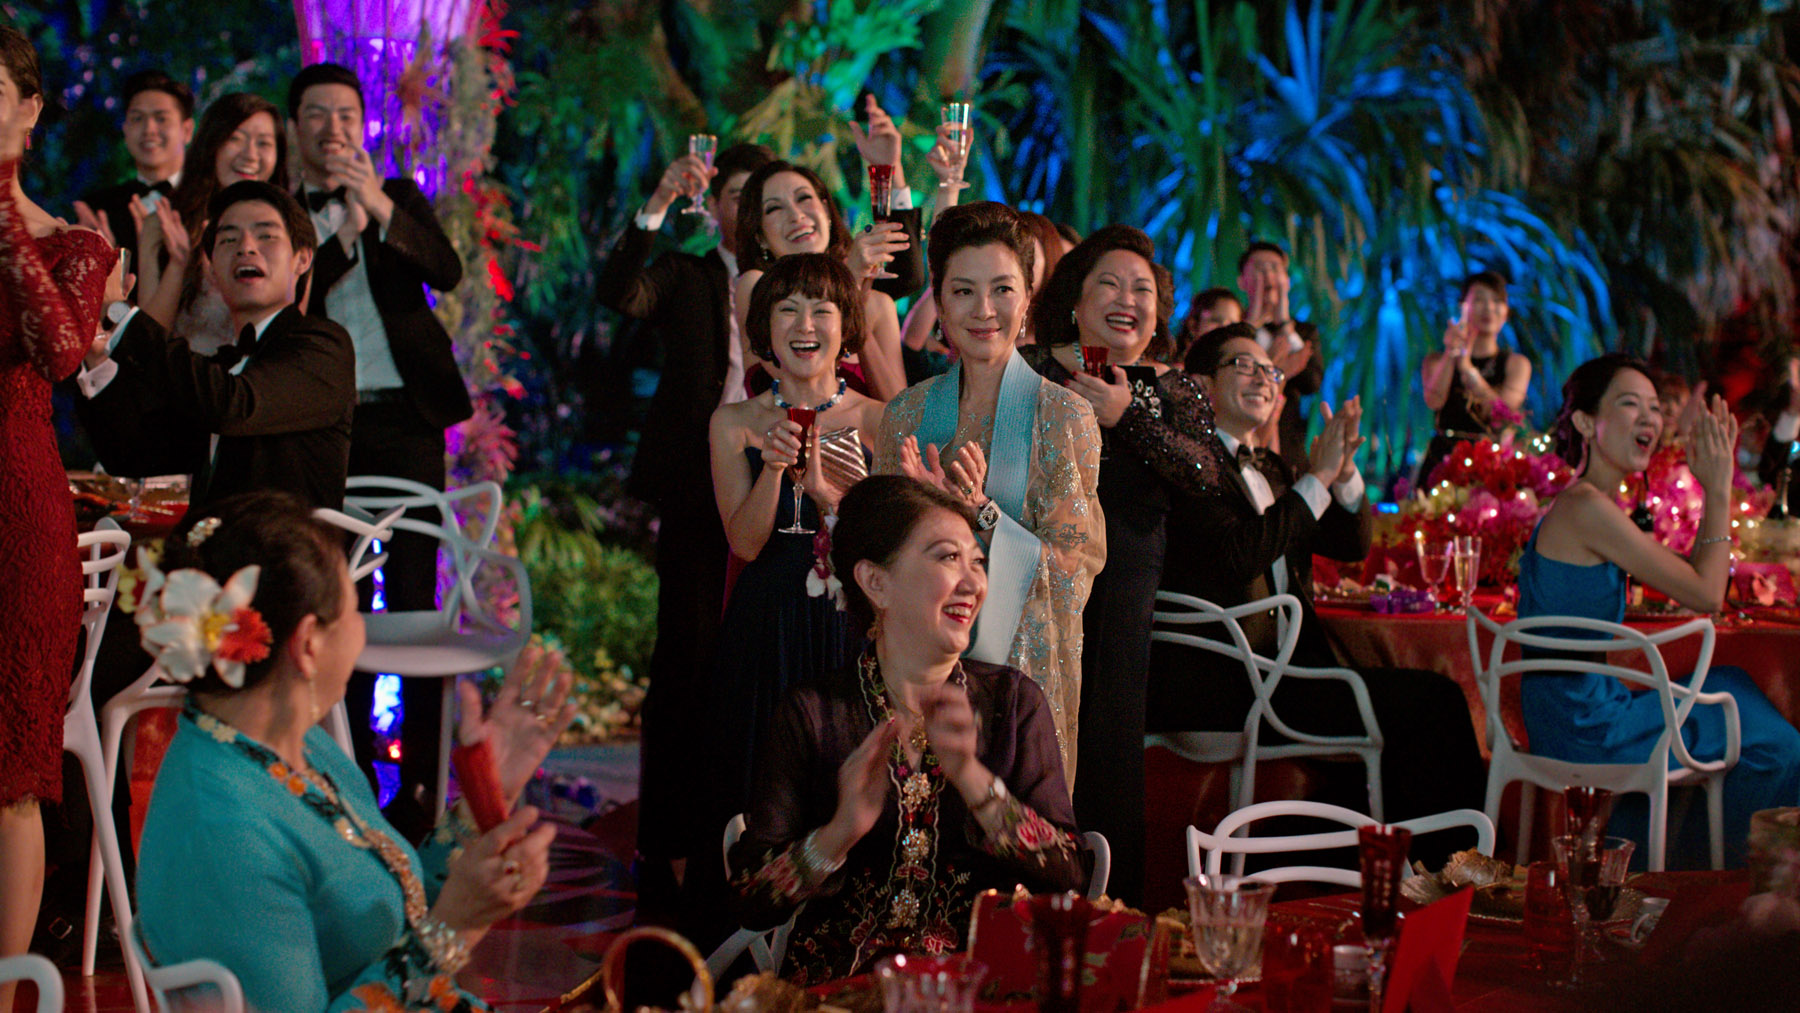 Michelle Yeoh as Henry Golding's mom for wedding in Crazy Rich Asians wedding scene